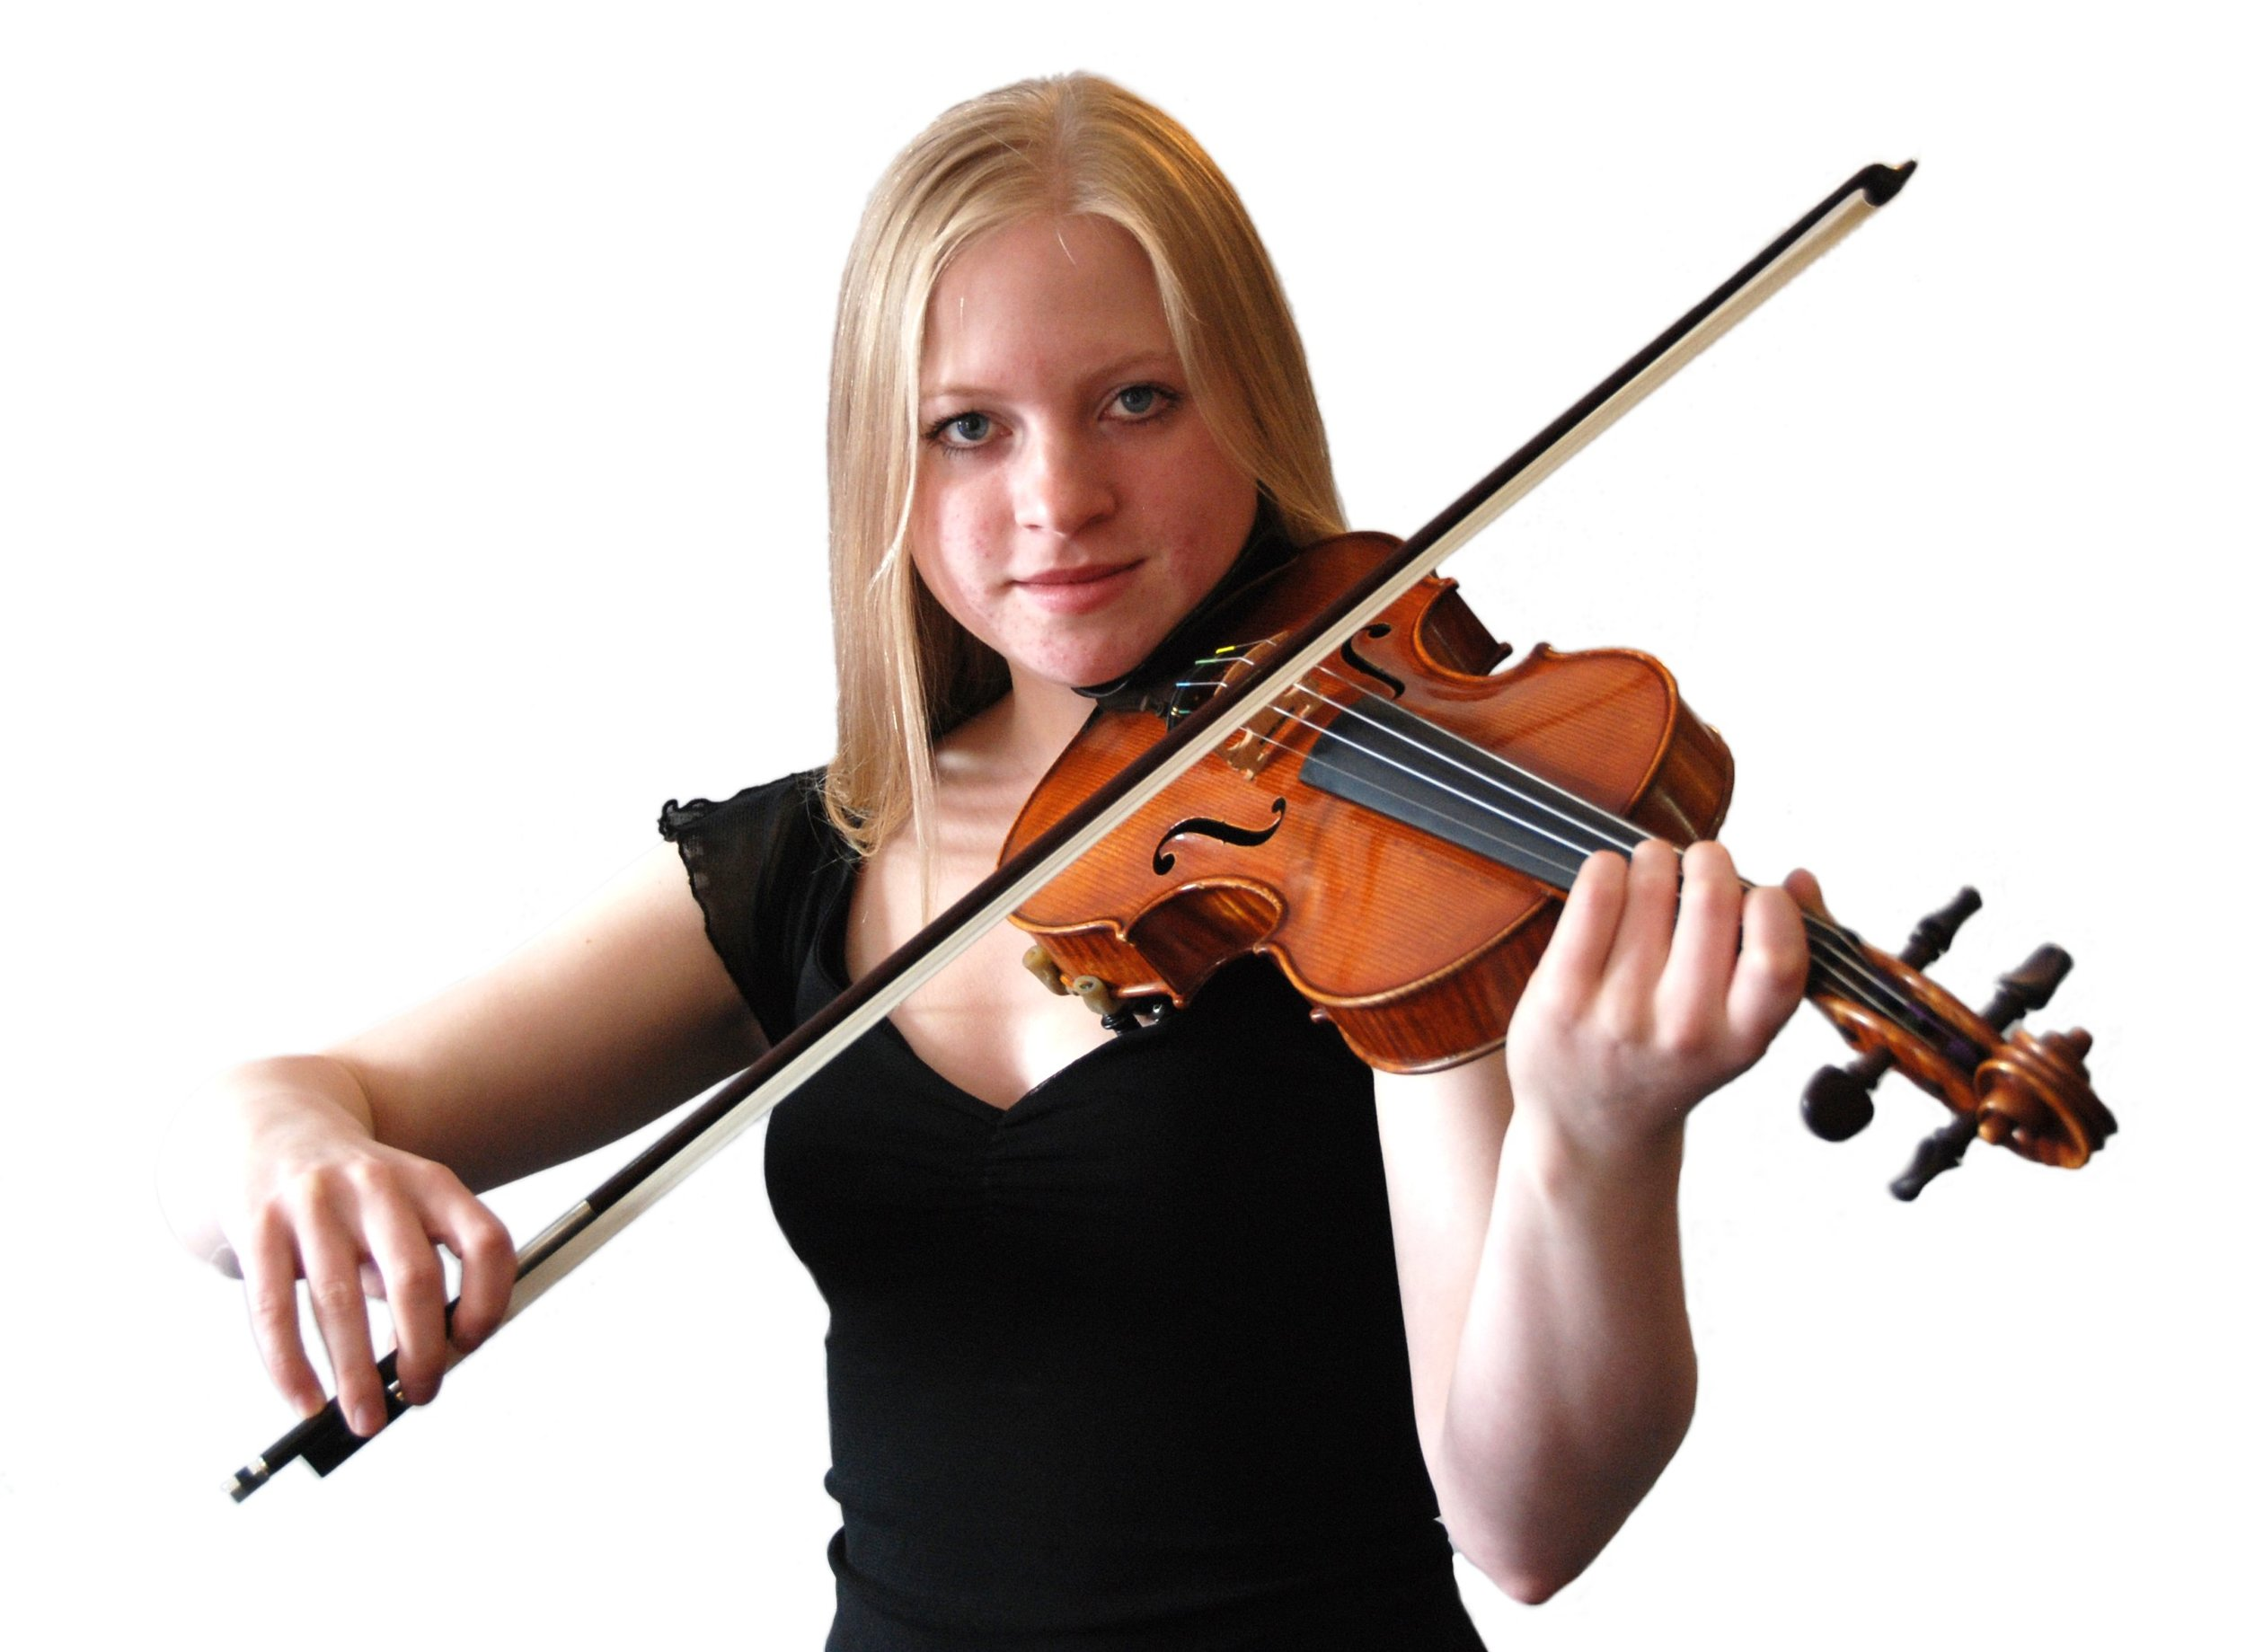 Girl playing Violin white backgroung Ingrid-Clement-edited.jpg